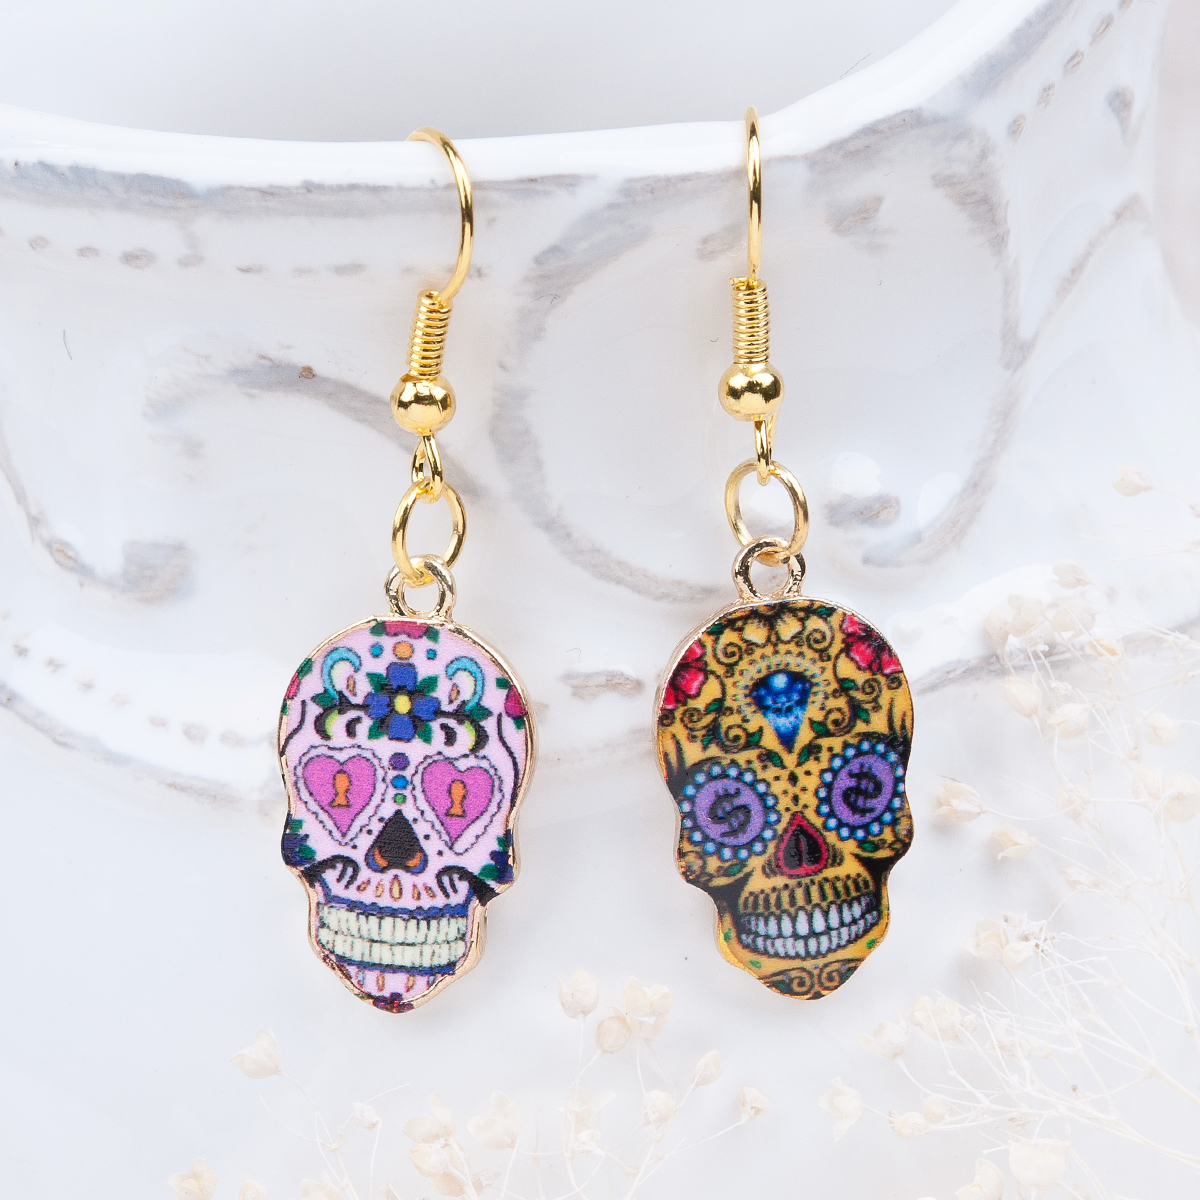 Doreen Box Day Of The Dead Earrings Gold color Sugar Skull Pattern 41mm x 13mm,1 Pair 2017 new